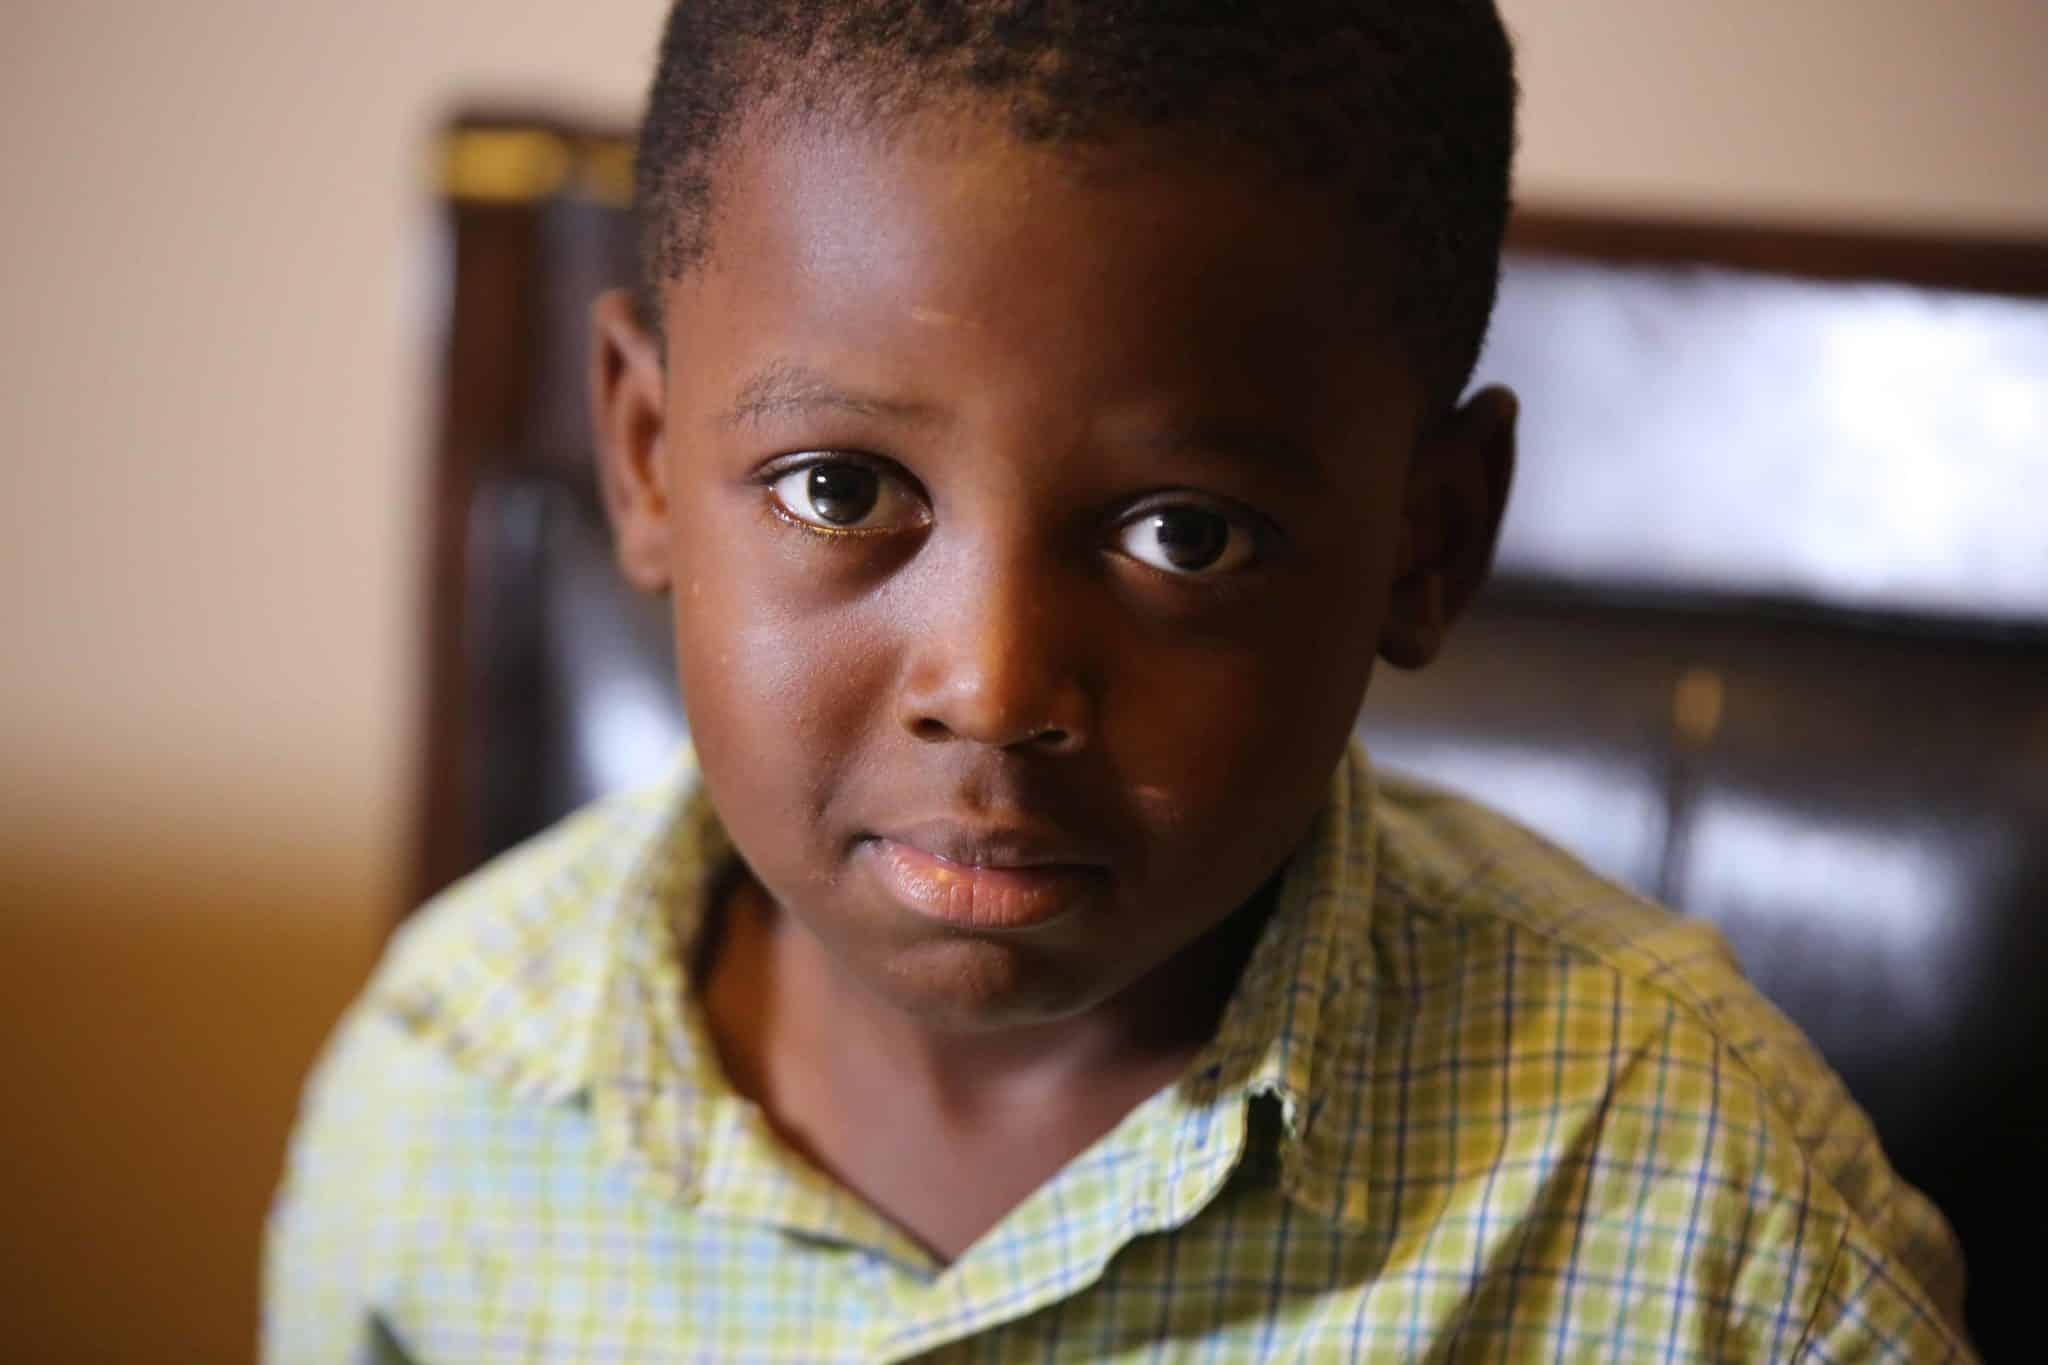 Special Education 101: Is an Individualized Education Plan the Only Way to Help My Child? • EBONY